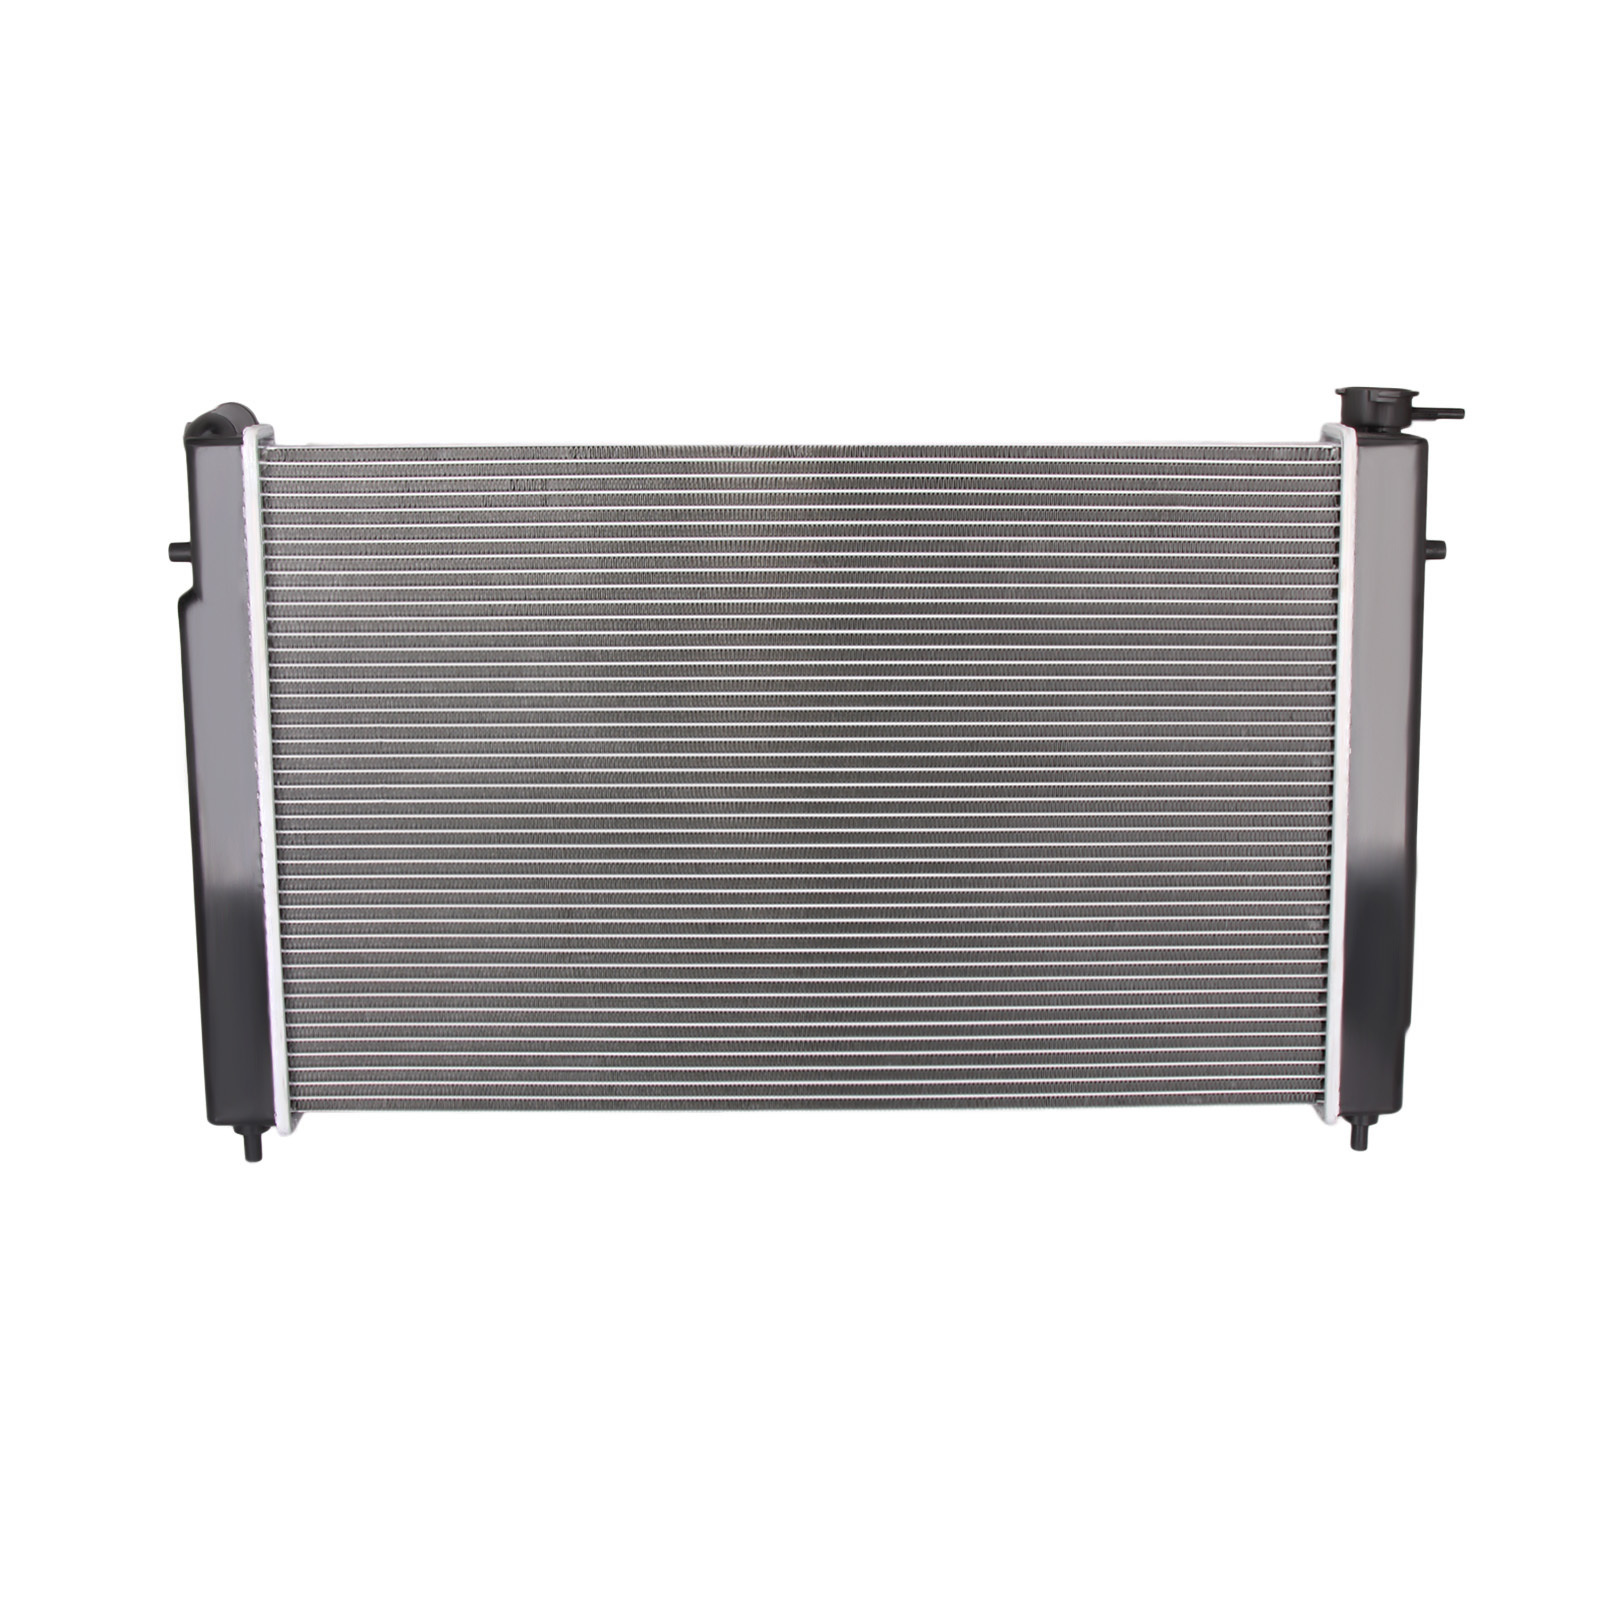 Premium Radiator Holden Commodore V6 Engine VT VX Series 1997-2002 Auto/Manual